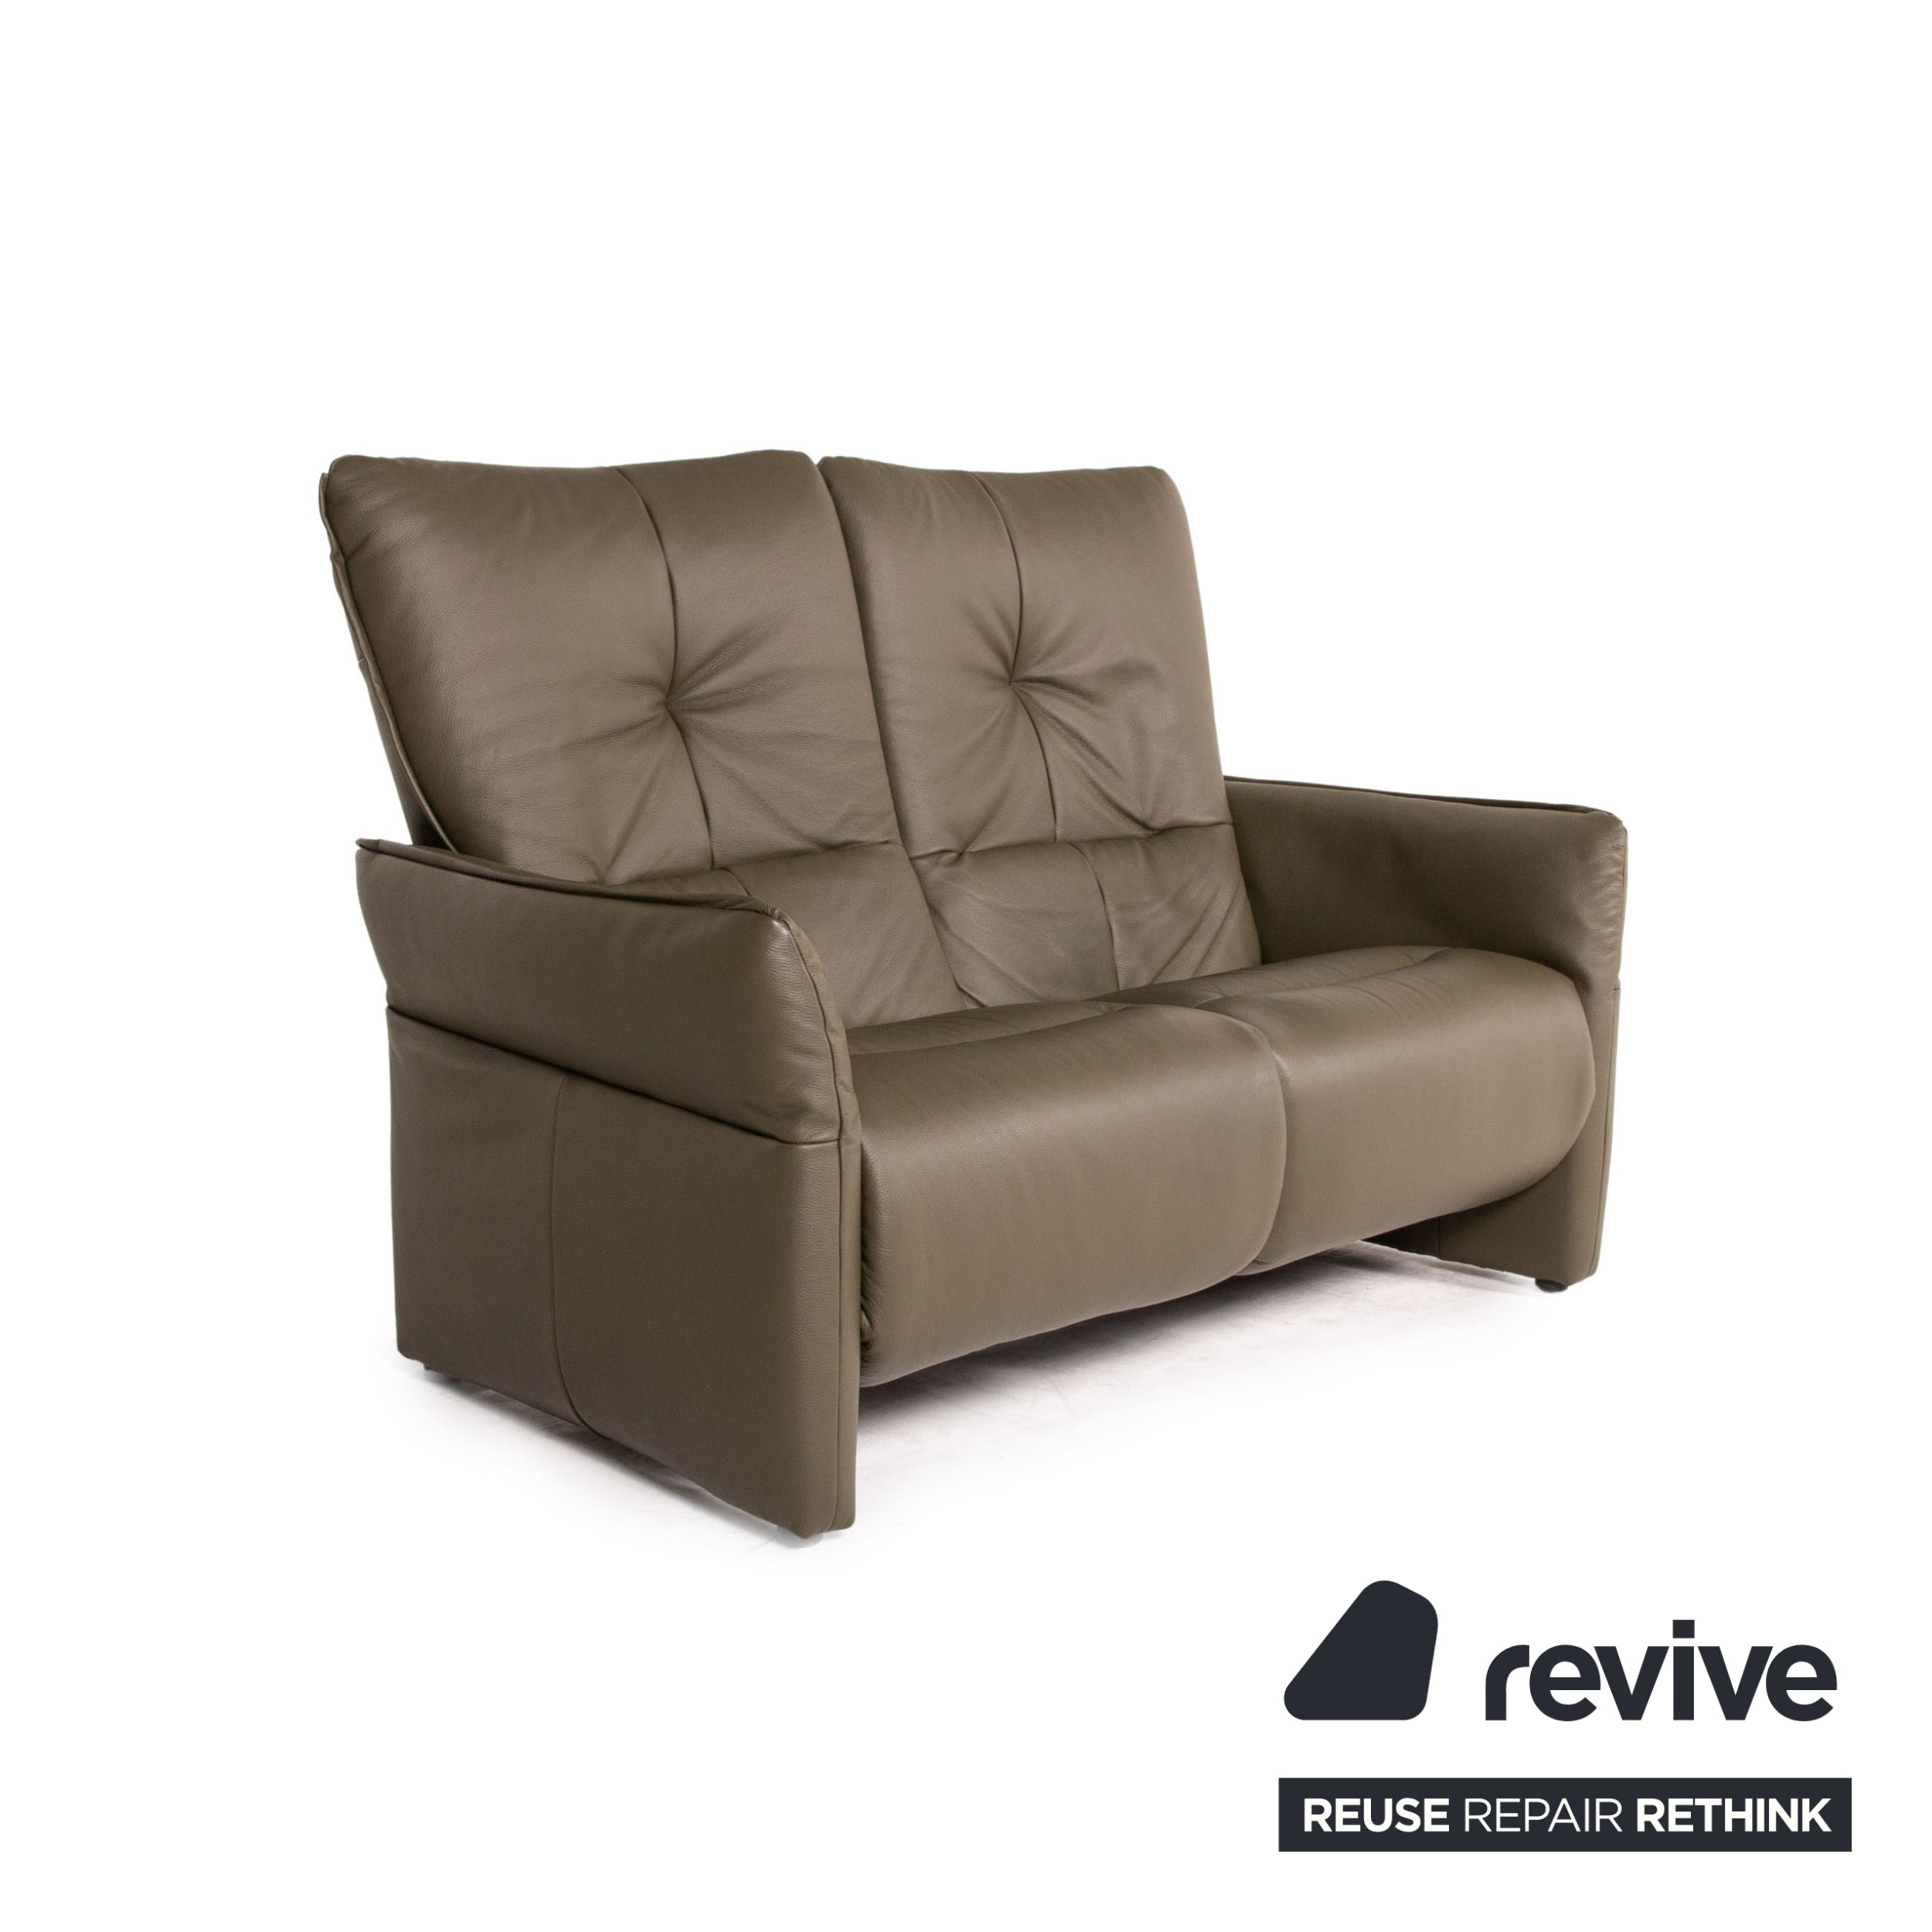 Himolla Cumuly Leder Sofa Olivgrün Graugrün Zweisitzer Funktion Relaxfunktion Couch